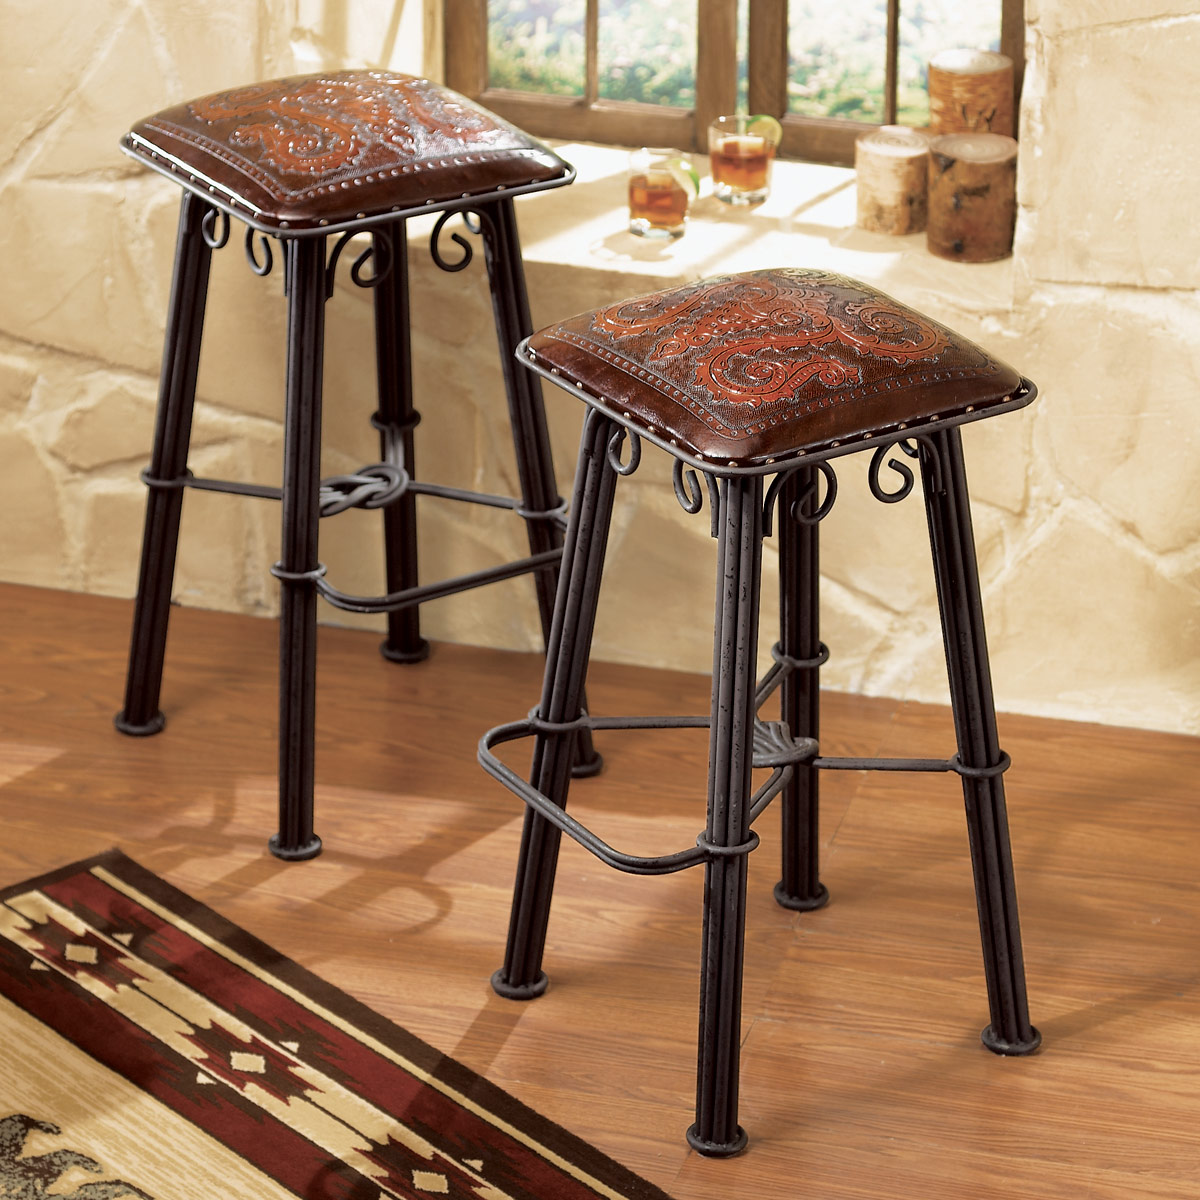 Iron Barstool Tooled Leather Seat